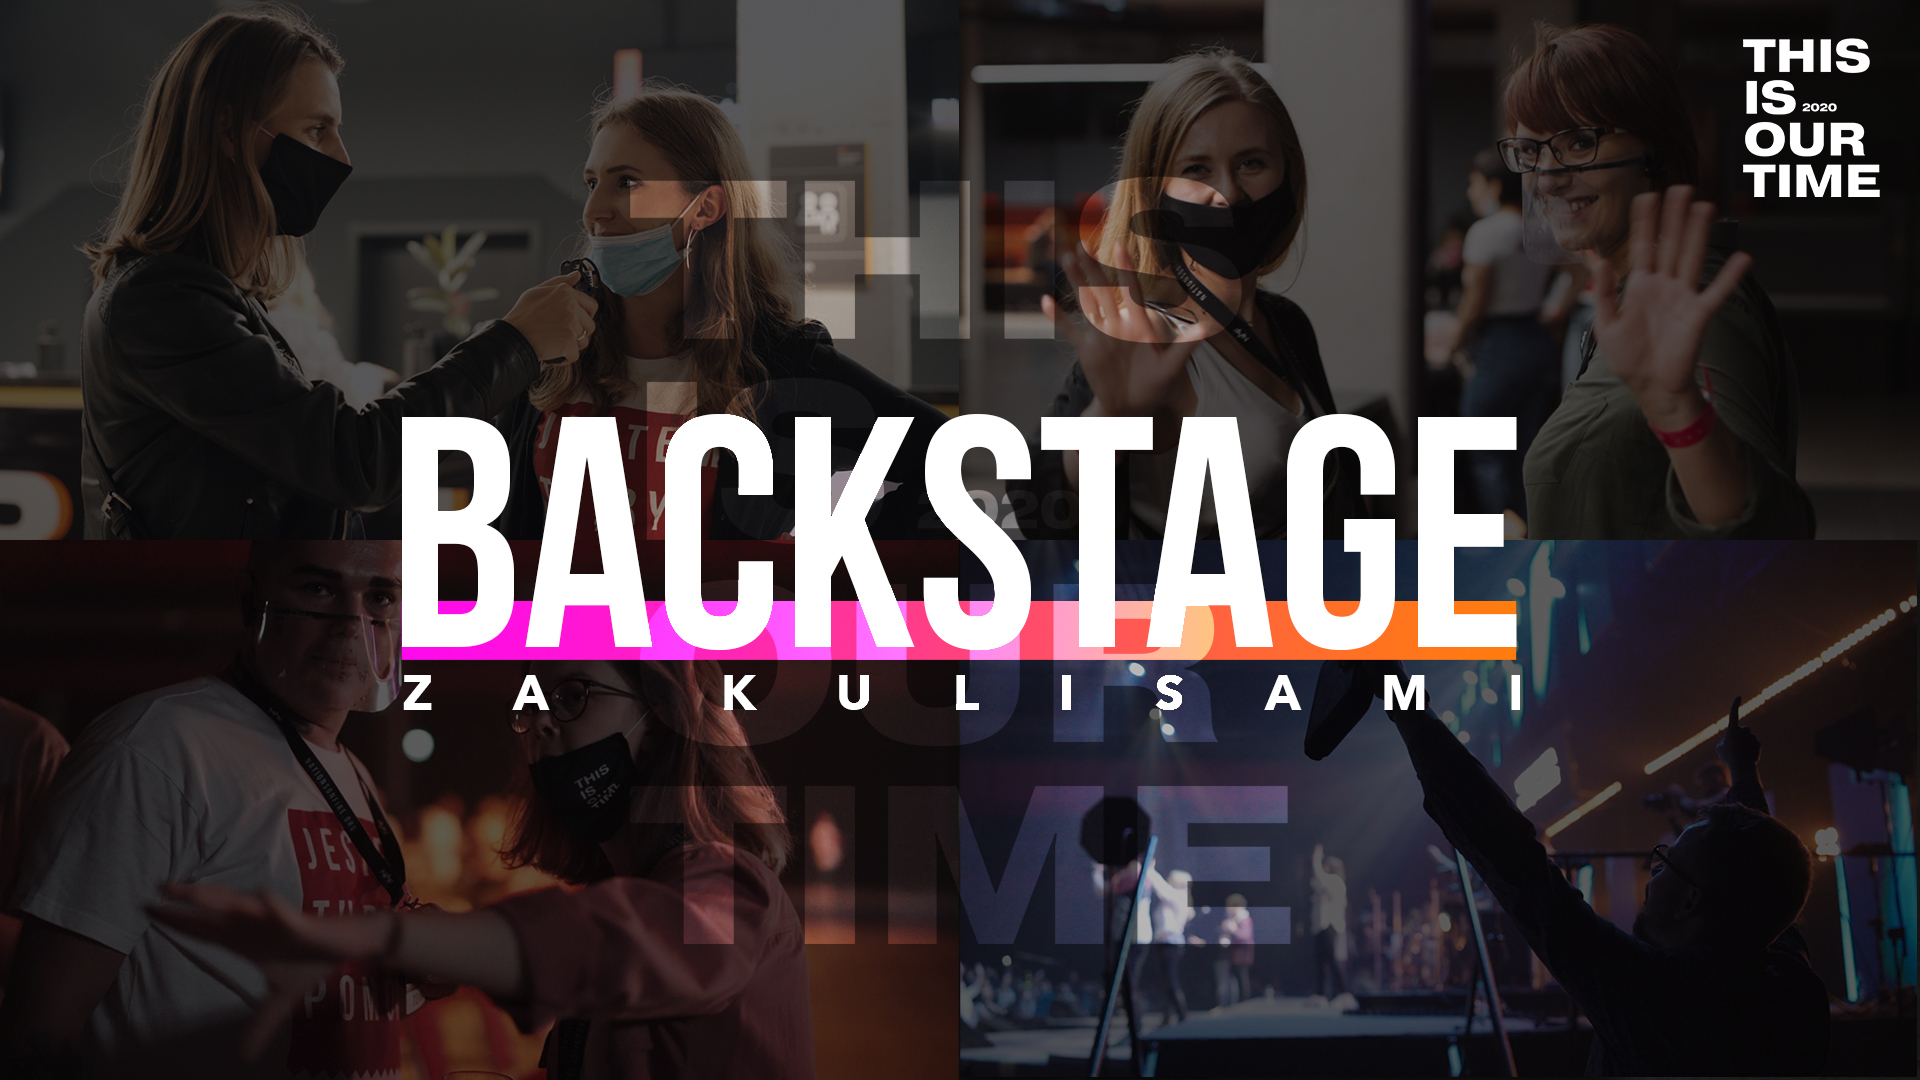 This Is Our Time 2020 | Backstage / Za kulisami